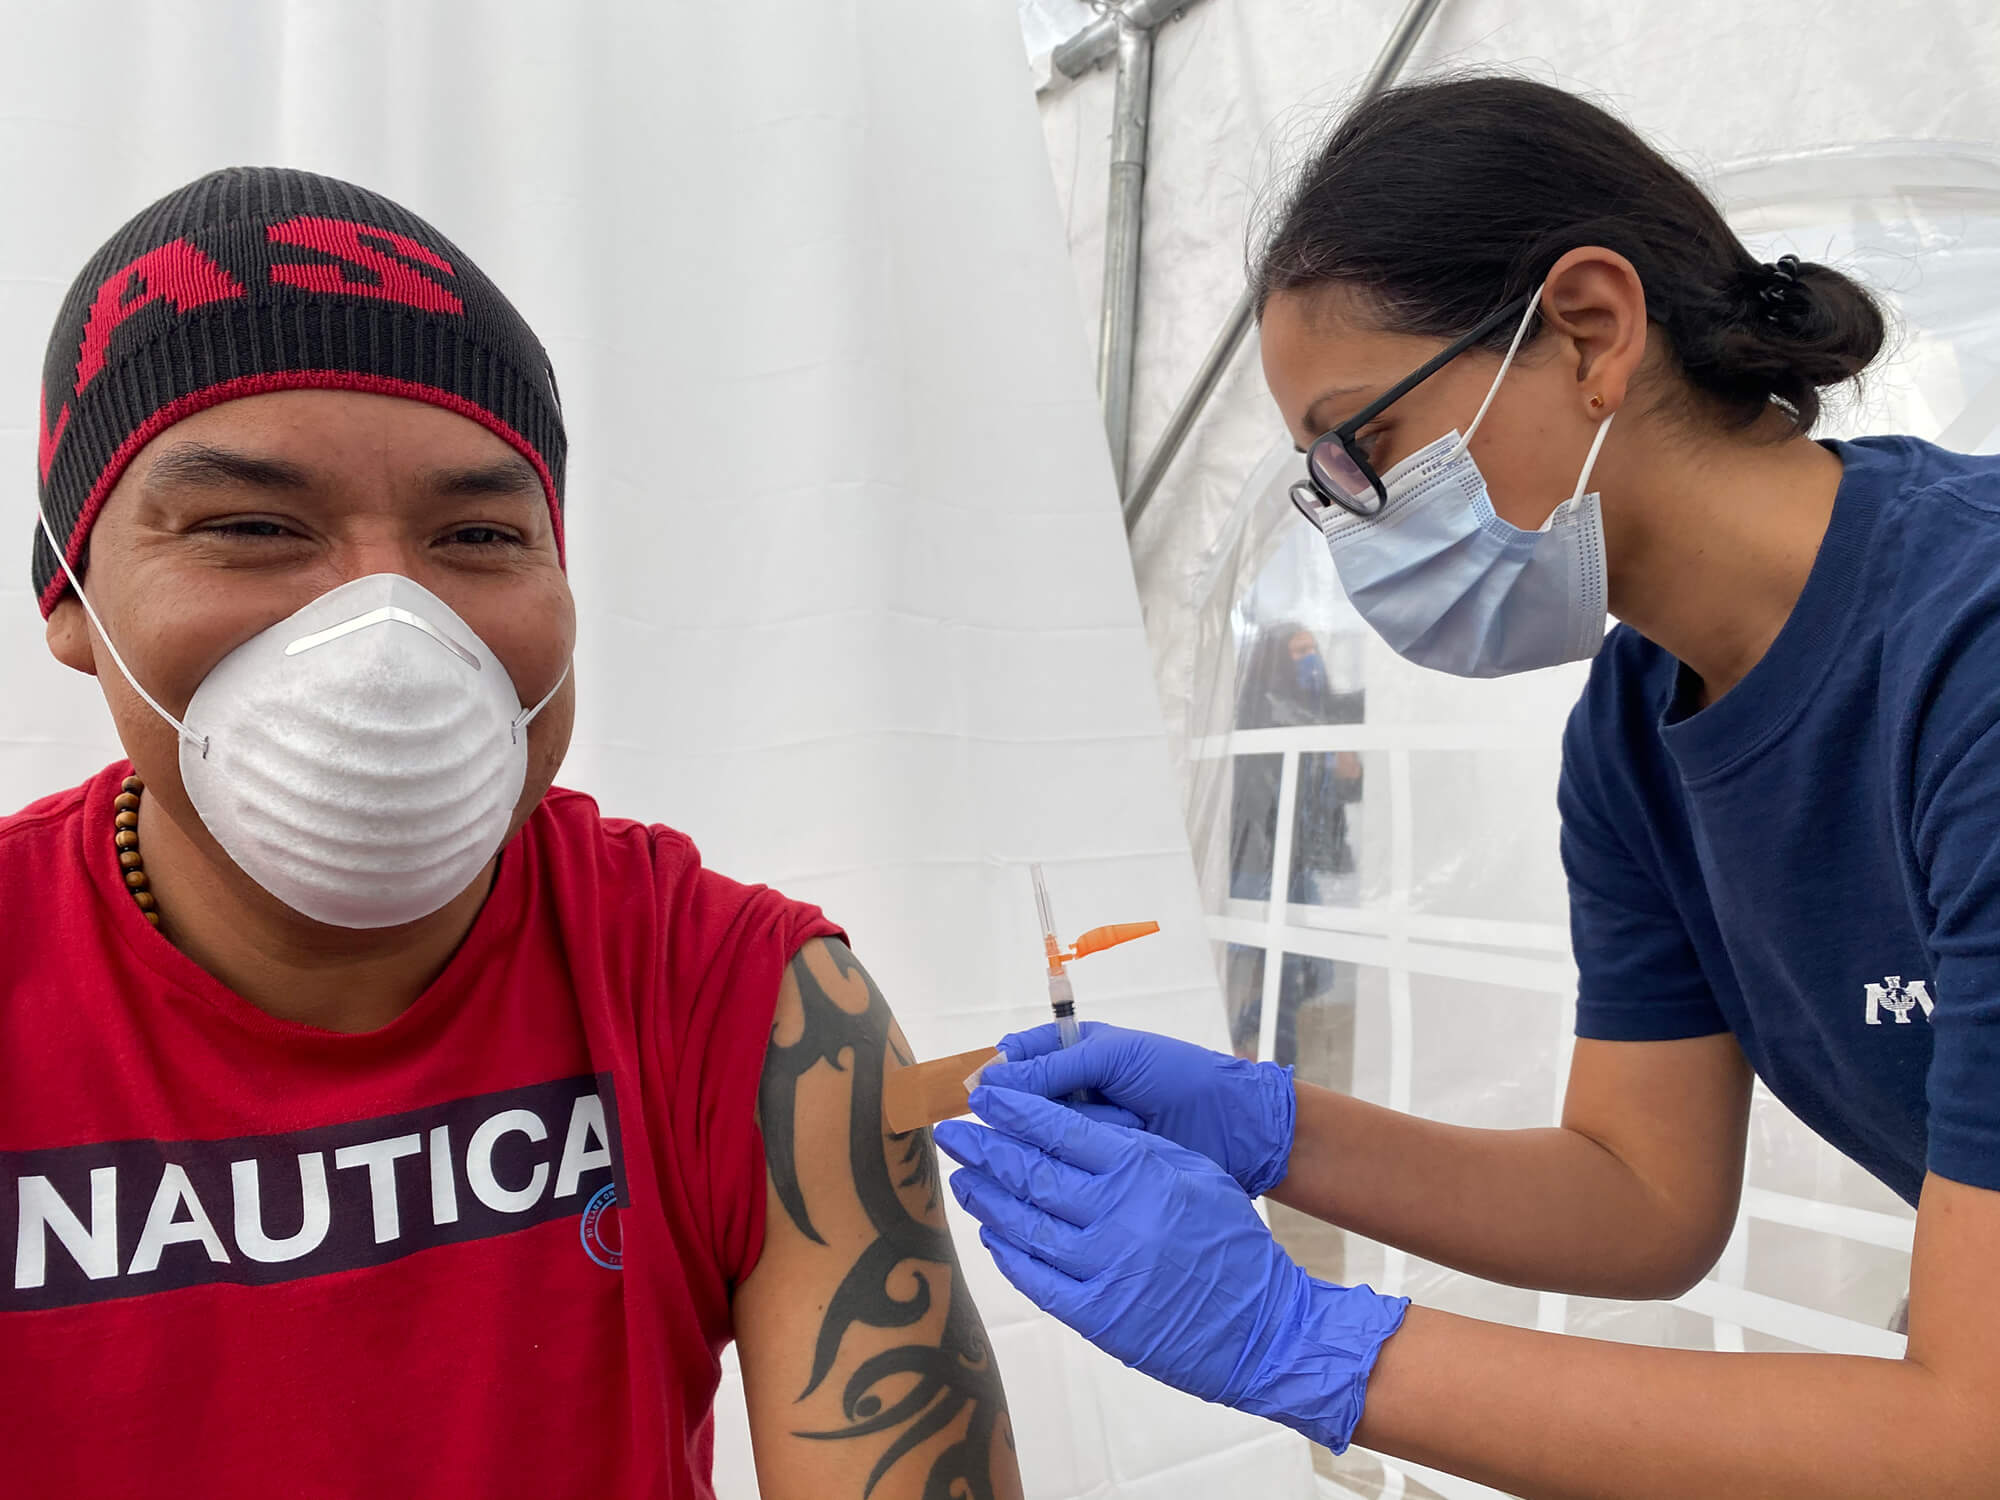 We are supporting vaccination efforts at Martin Luther King, Jr. Community Hospital and at Kedren Community Health Center, both of which serve vulnerable populations in Central and South Los Angeles.